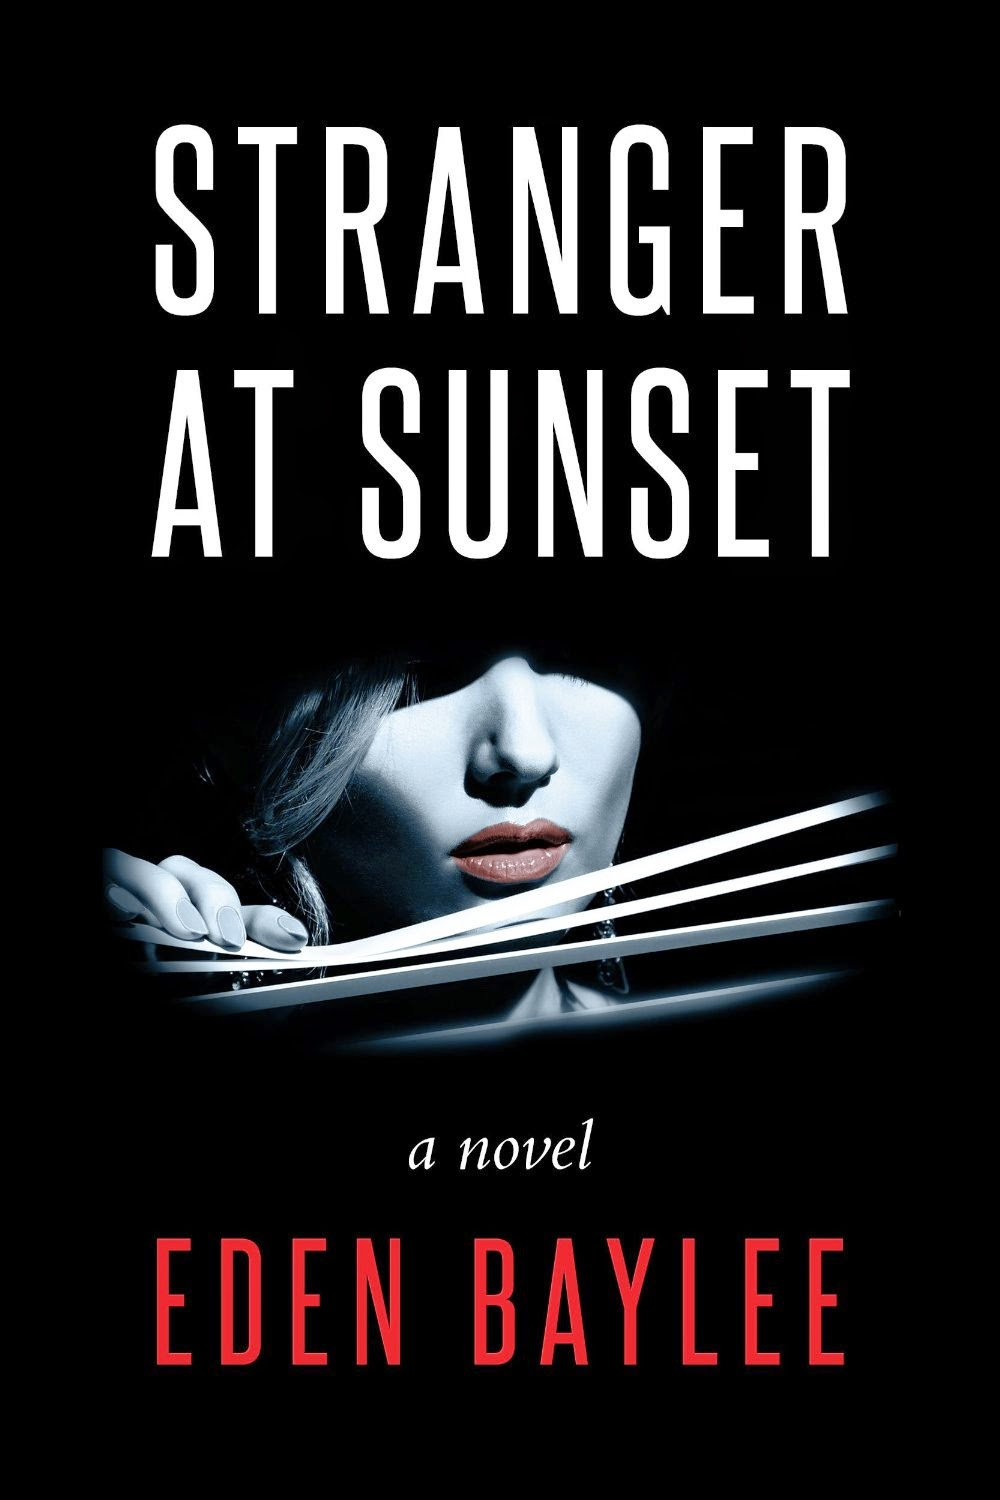 http://www.amazon.com/Stranger-at-Sunset-Eden-Baylee-ebook/dp/B00L7BVDFM/ref=sr_1_1?ie=UTF8&qid=1424660347&sr=8-1&keywords=stranger+at+Sunset